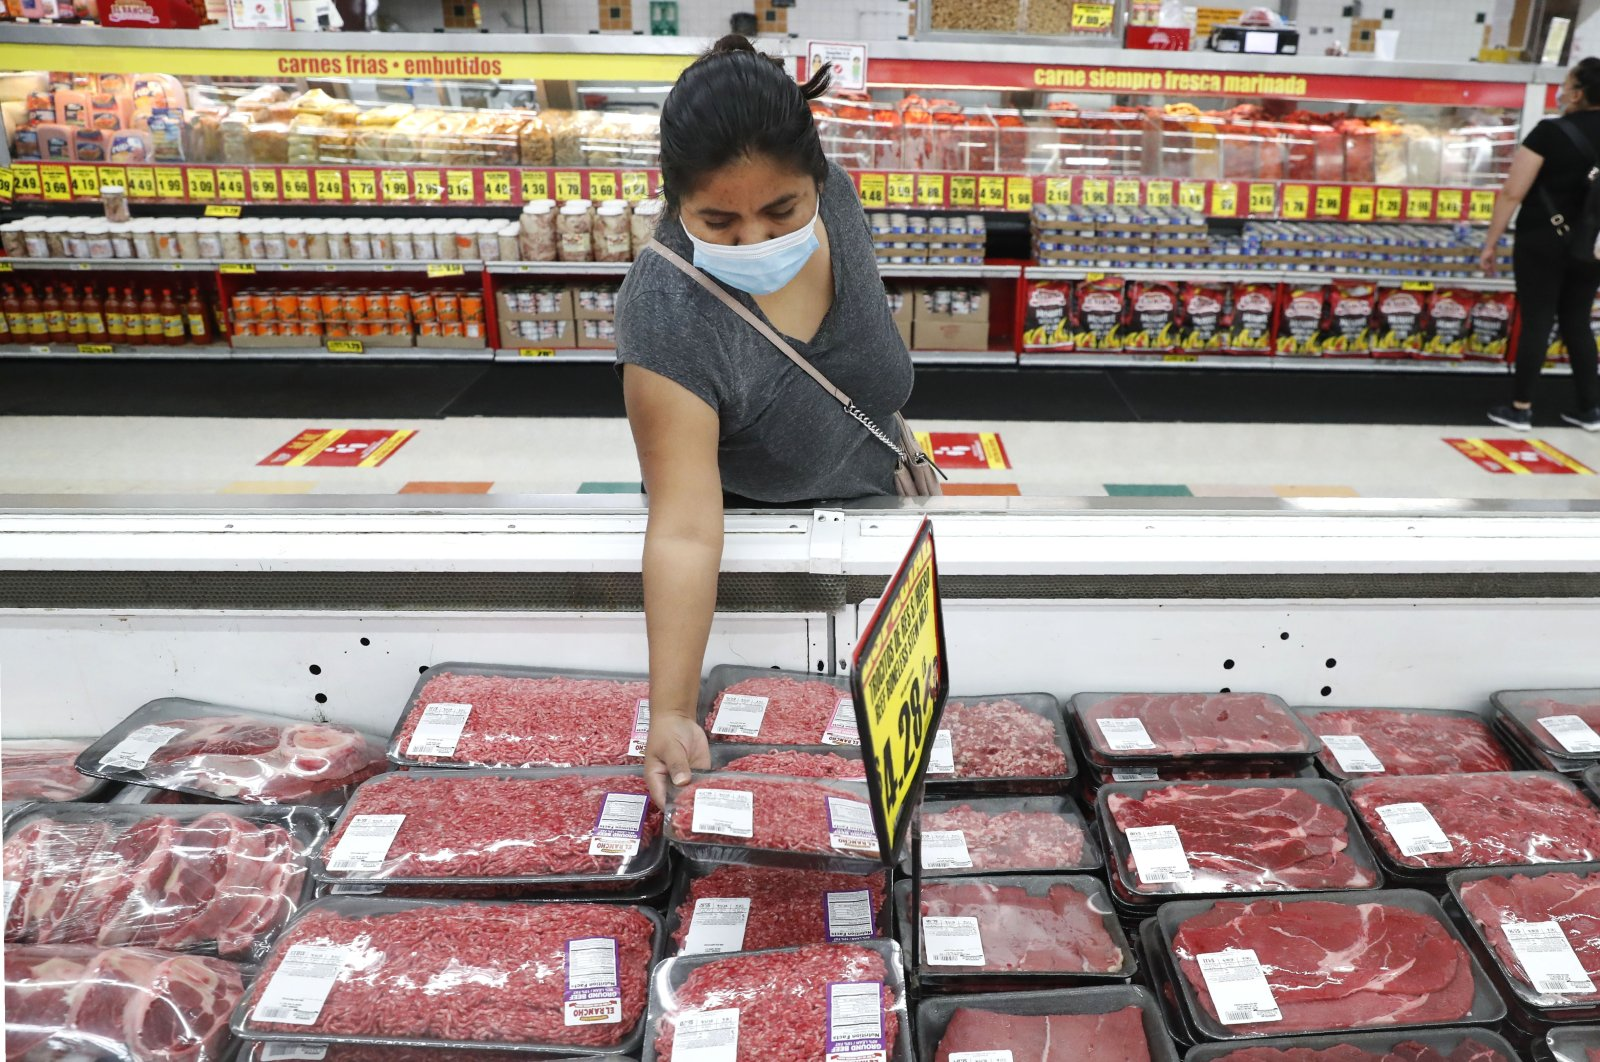 A shopper wears a mask as she looks over meat products at a grocery store in Dallas, Texas, U.S., April 29, 2020. (AP Photo)